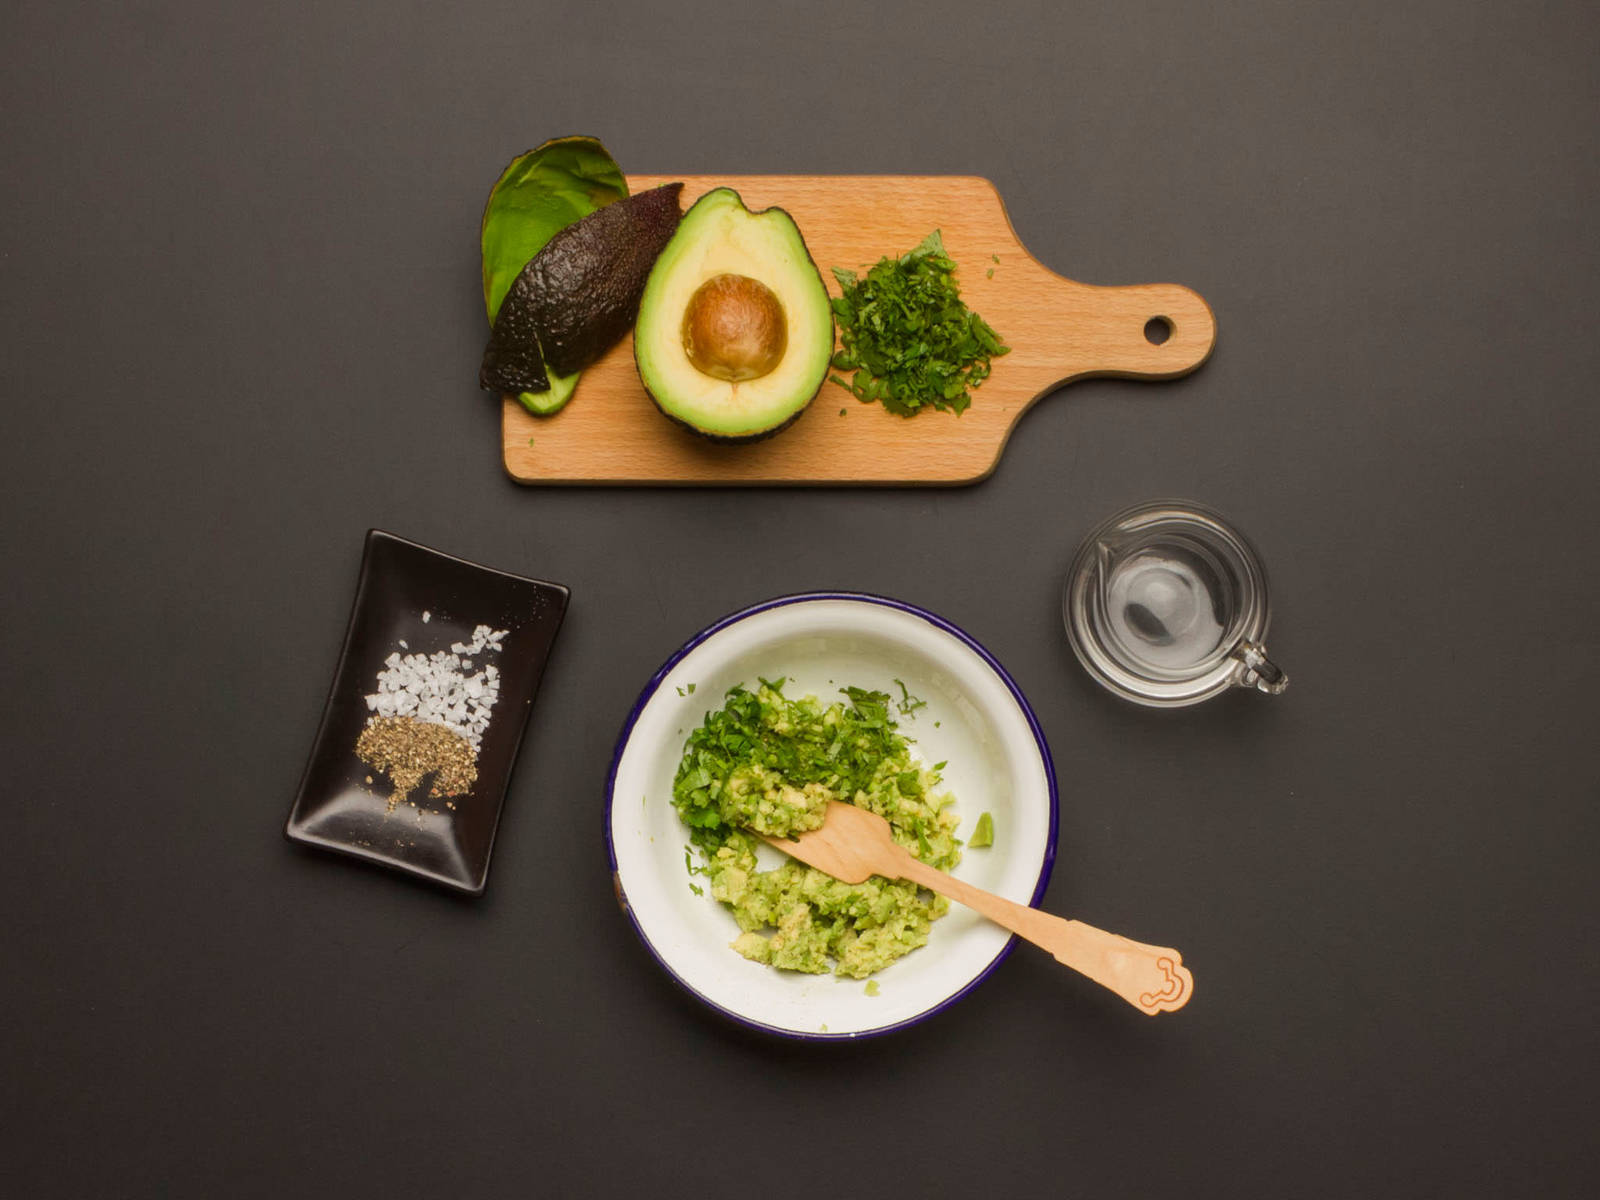 Cut avocado in half and remove pit. Scoop out flesh, place in a bowl, and mash with a fork. Add half of cilantro and the white wine vinegar to bowl, and mix well to combine. Season to taste with salt and pepper.